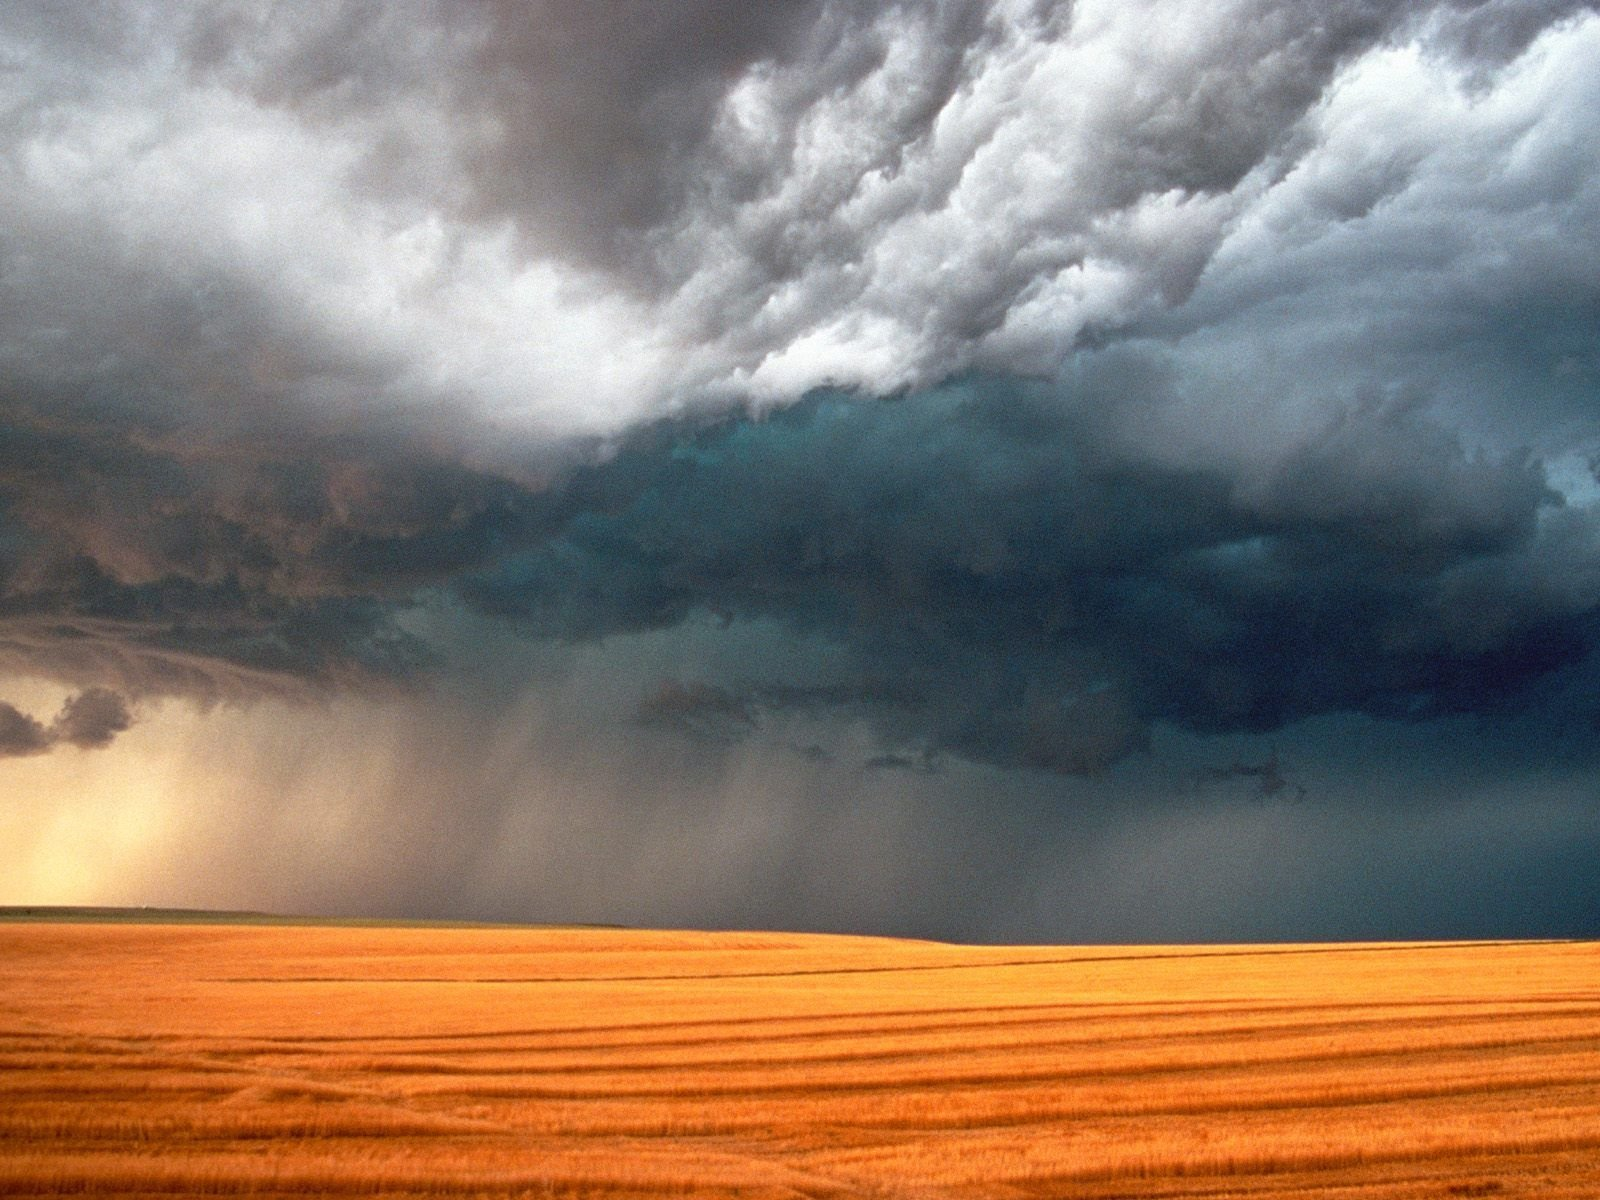 desktop wallpaper field storm 75609 1600x1200